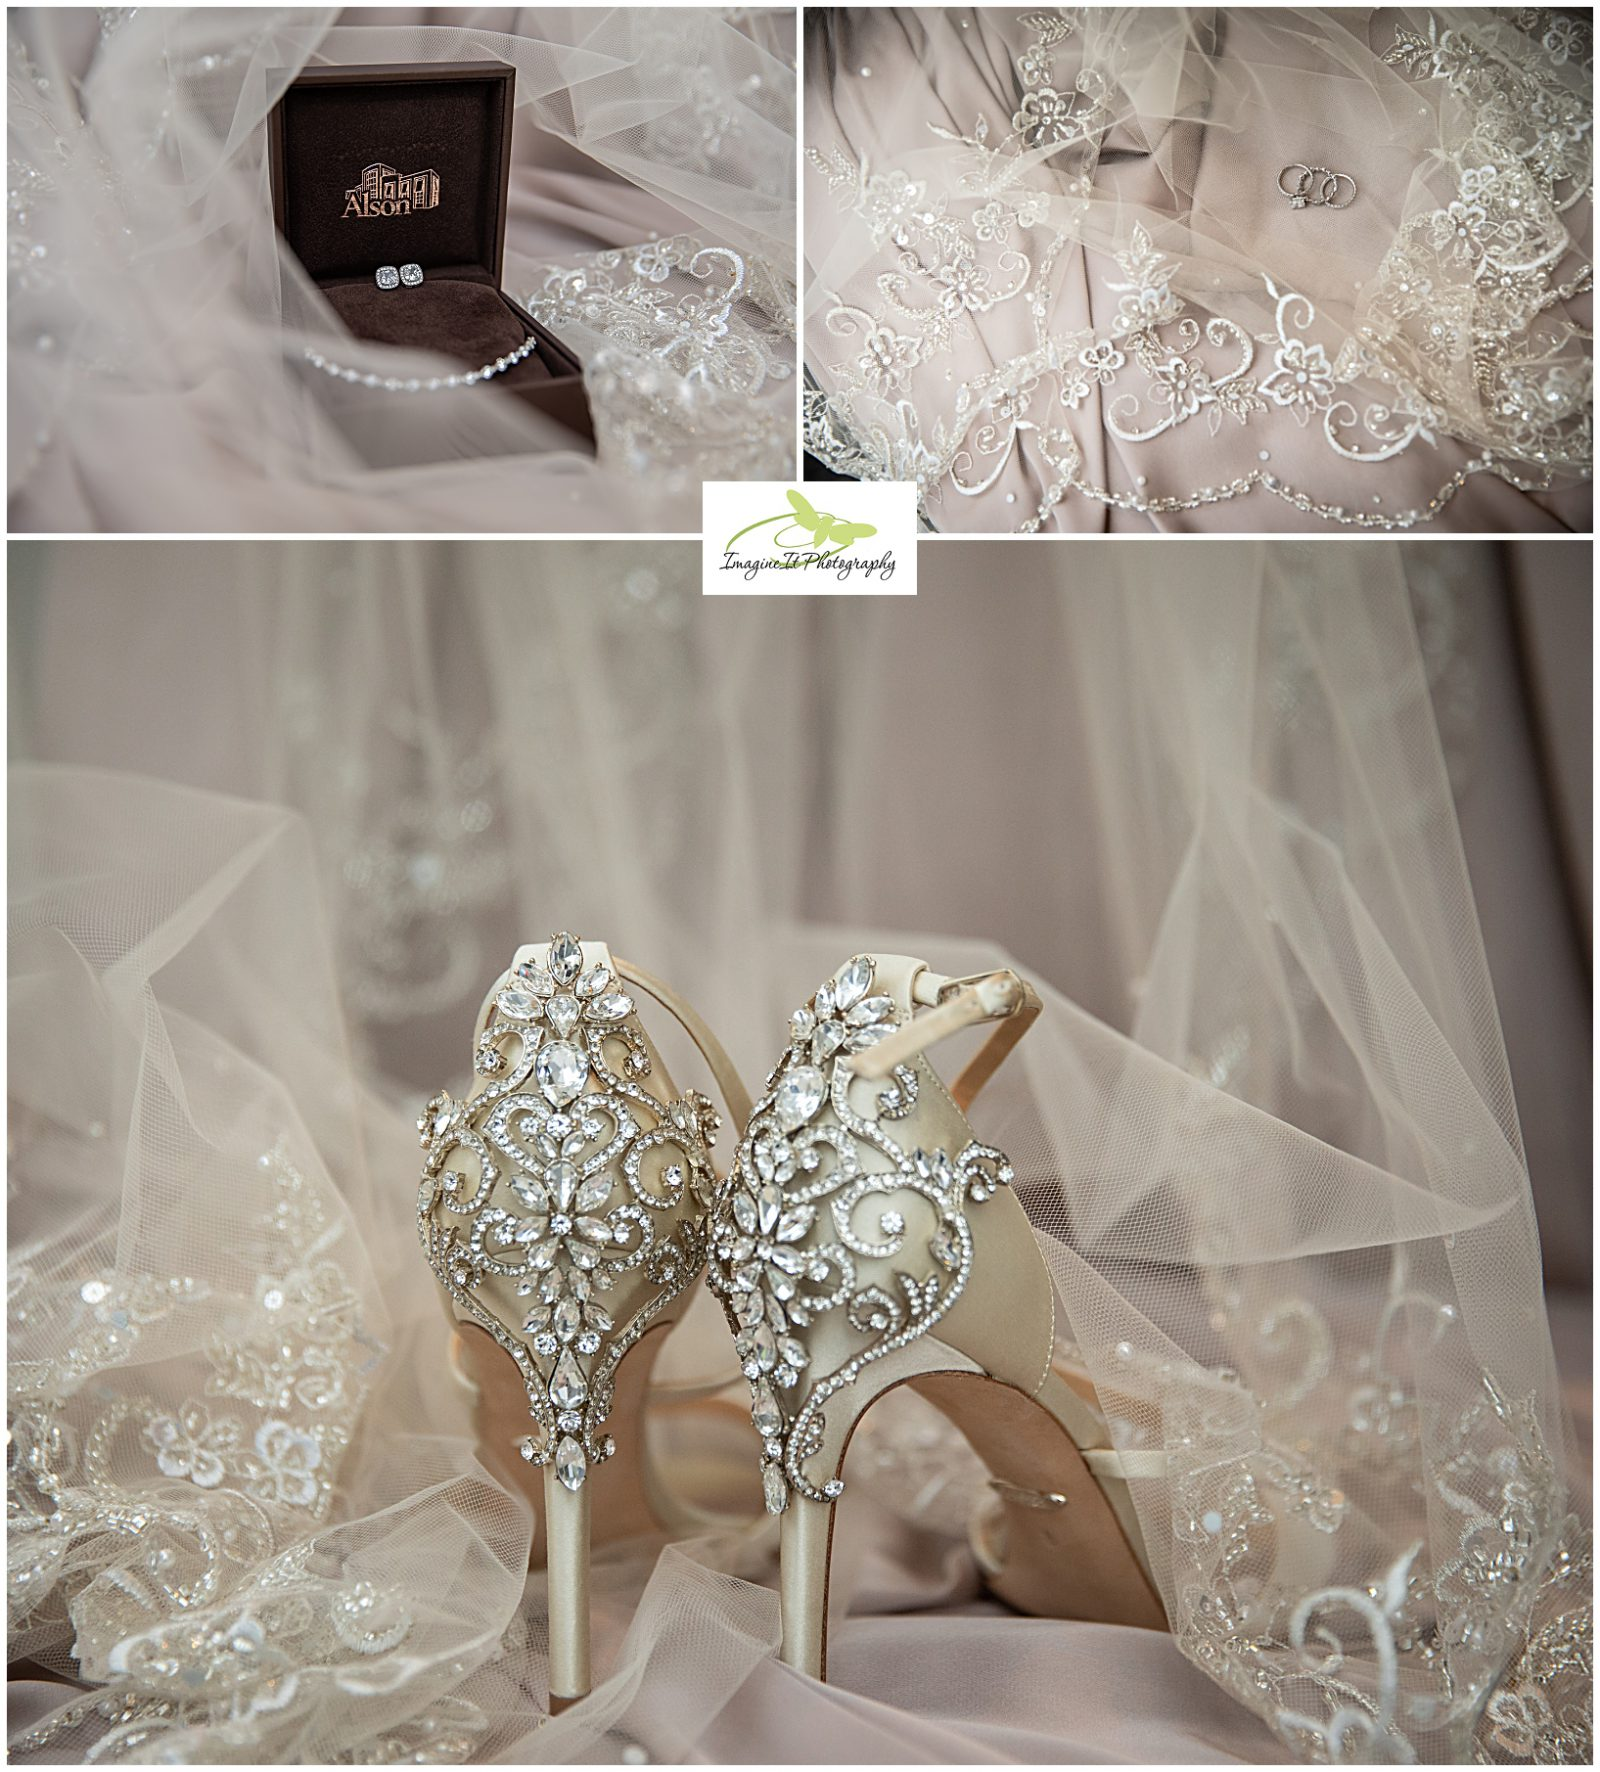 Aloft-wedding_0001